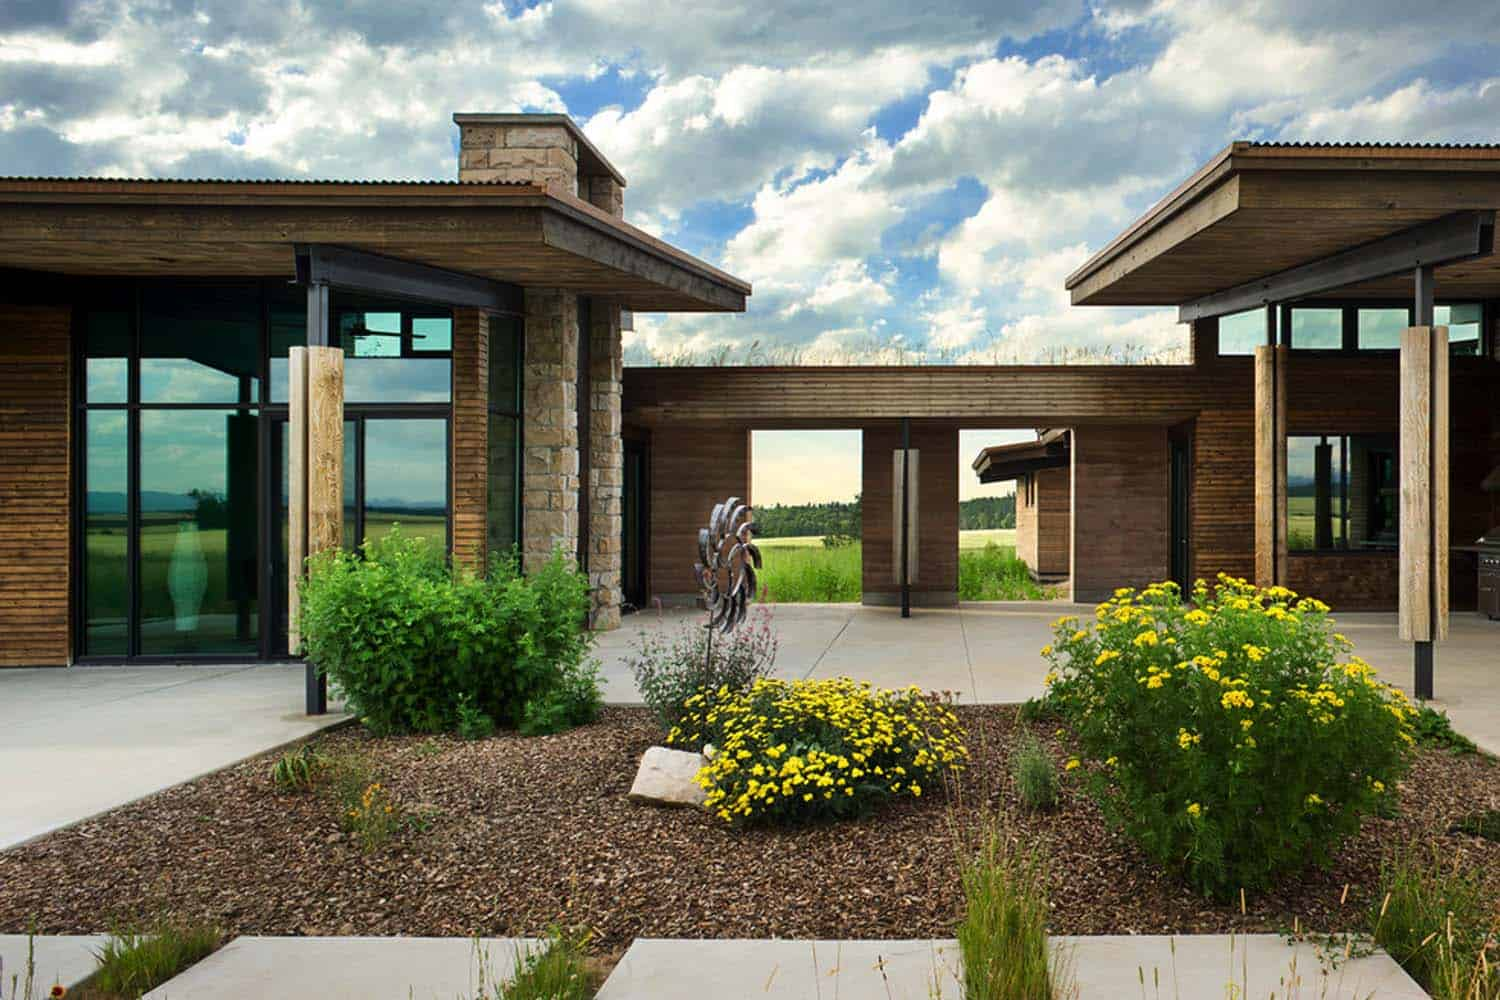 Visionary residence in Idaho comprised of rammed earth on modern icf house plans, modern stone house plans, modern clerestory house plans, modern design house plans, modern house house plans, modern cinder block house plans, modern stucco house plans, modern prefab house plans, modern green house plans, modern adobe house plans, modern timber frame house plans, modern california house plans, modern steel house plans, modern solar house plans, modern brick house plans, modern bamboo house plans, modern building house plans, modern underground house plans, modern studio house plans, modern log house plans,